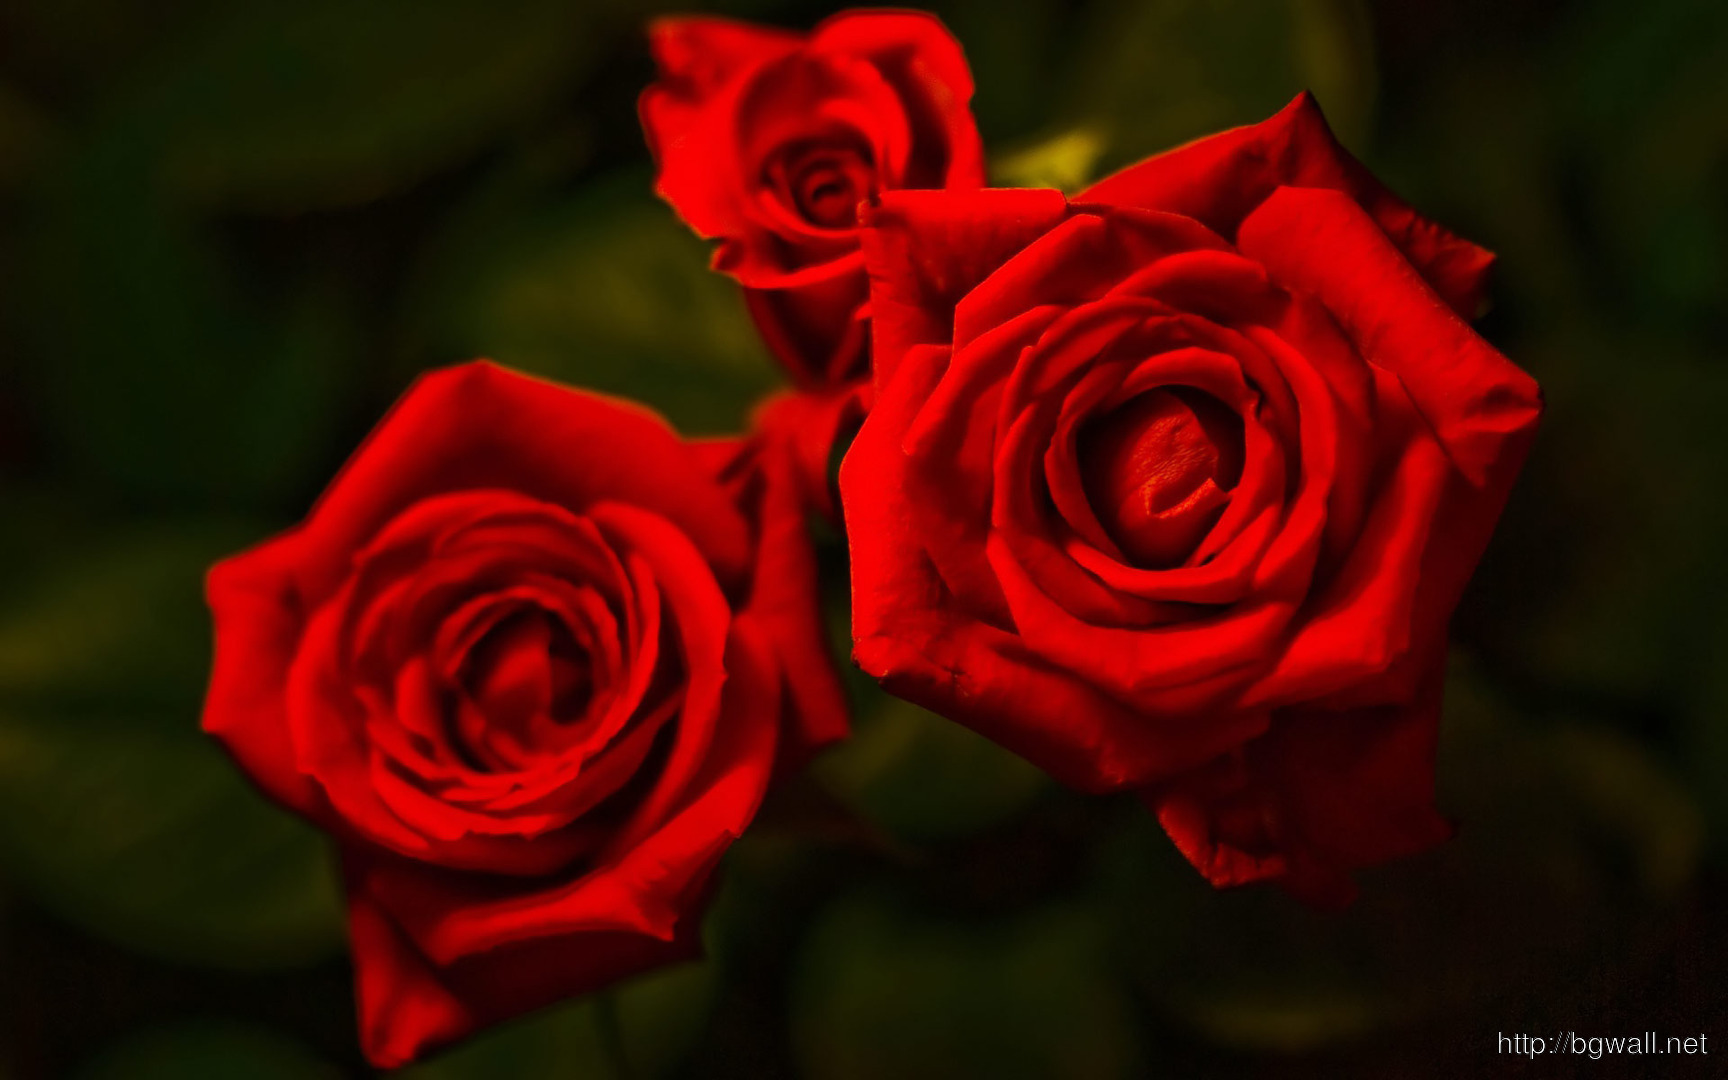 Red Roses Wallpaper 889 Full Size